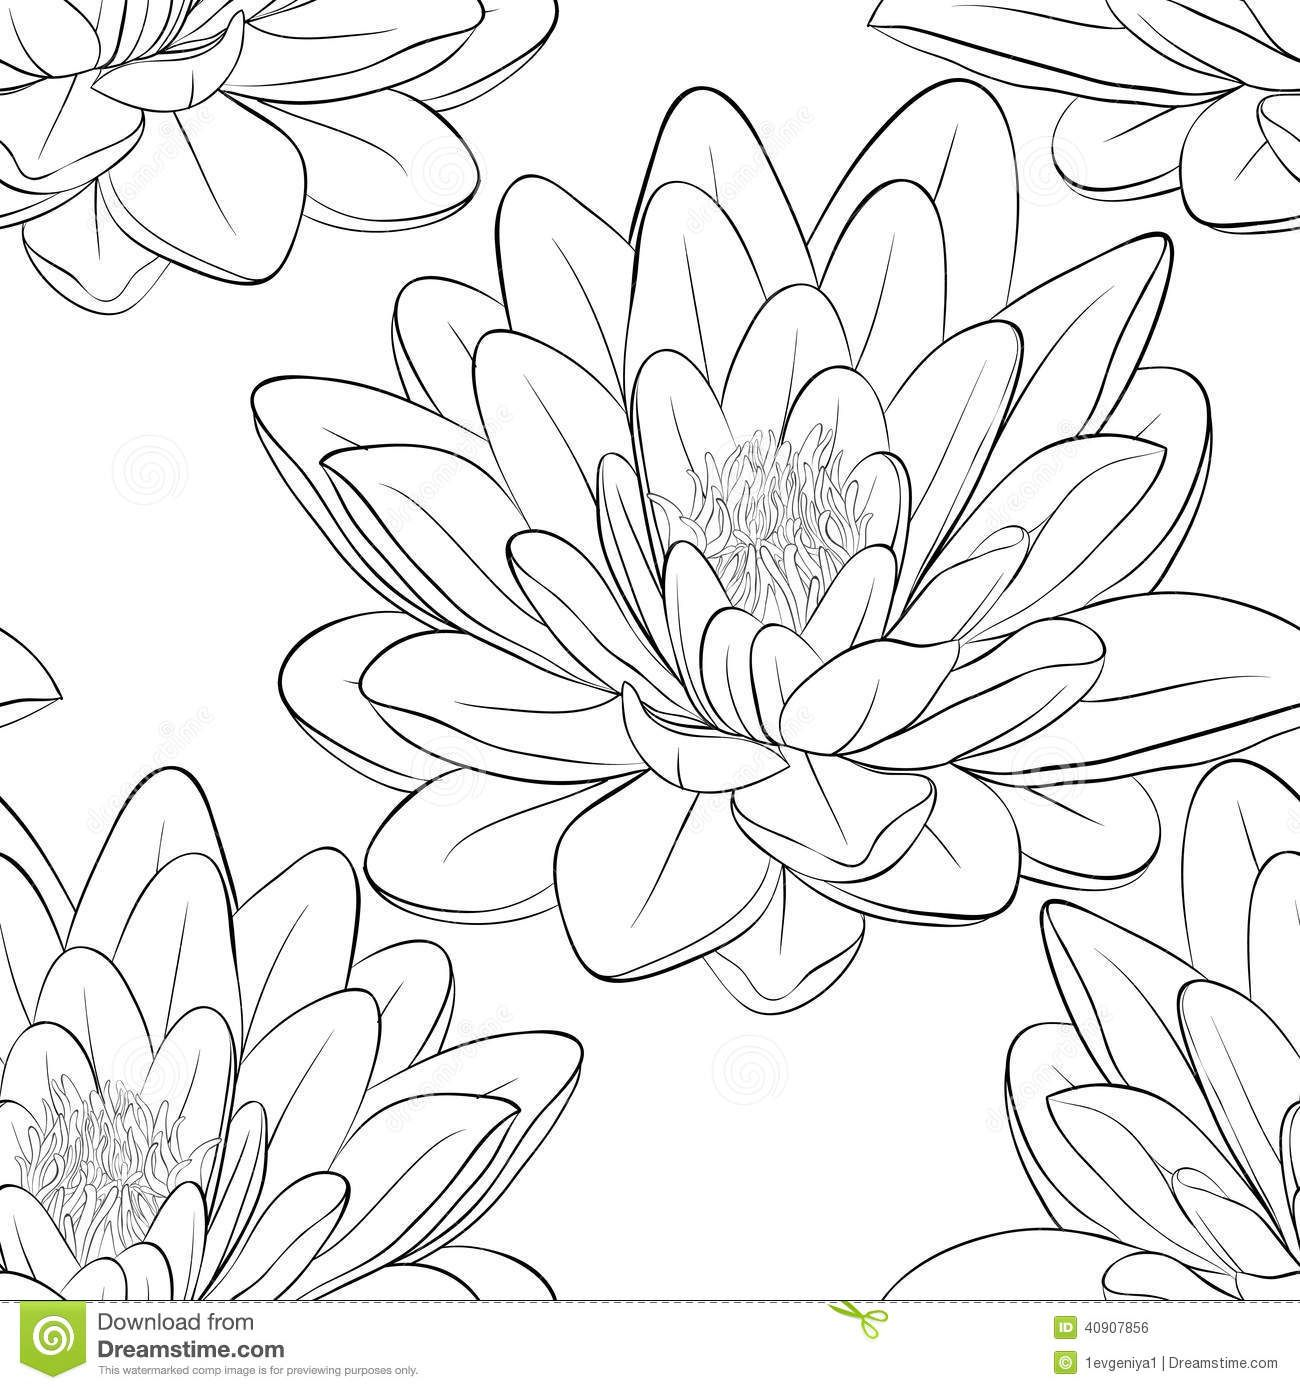 Japanese Lotus Flower Outline Lotus flower drawing black